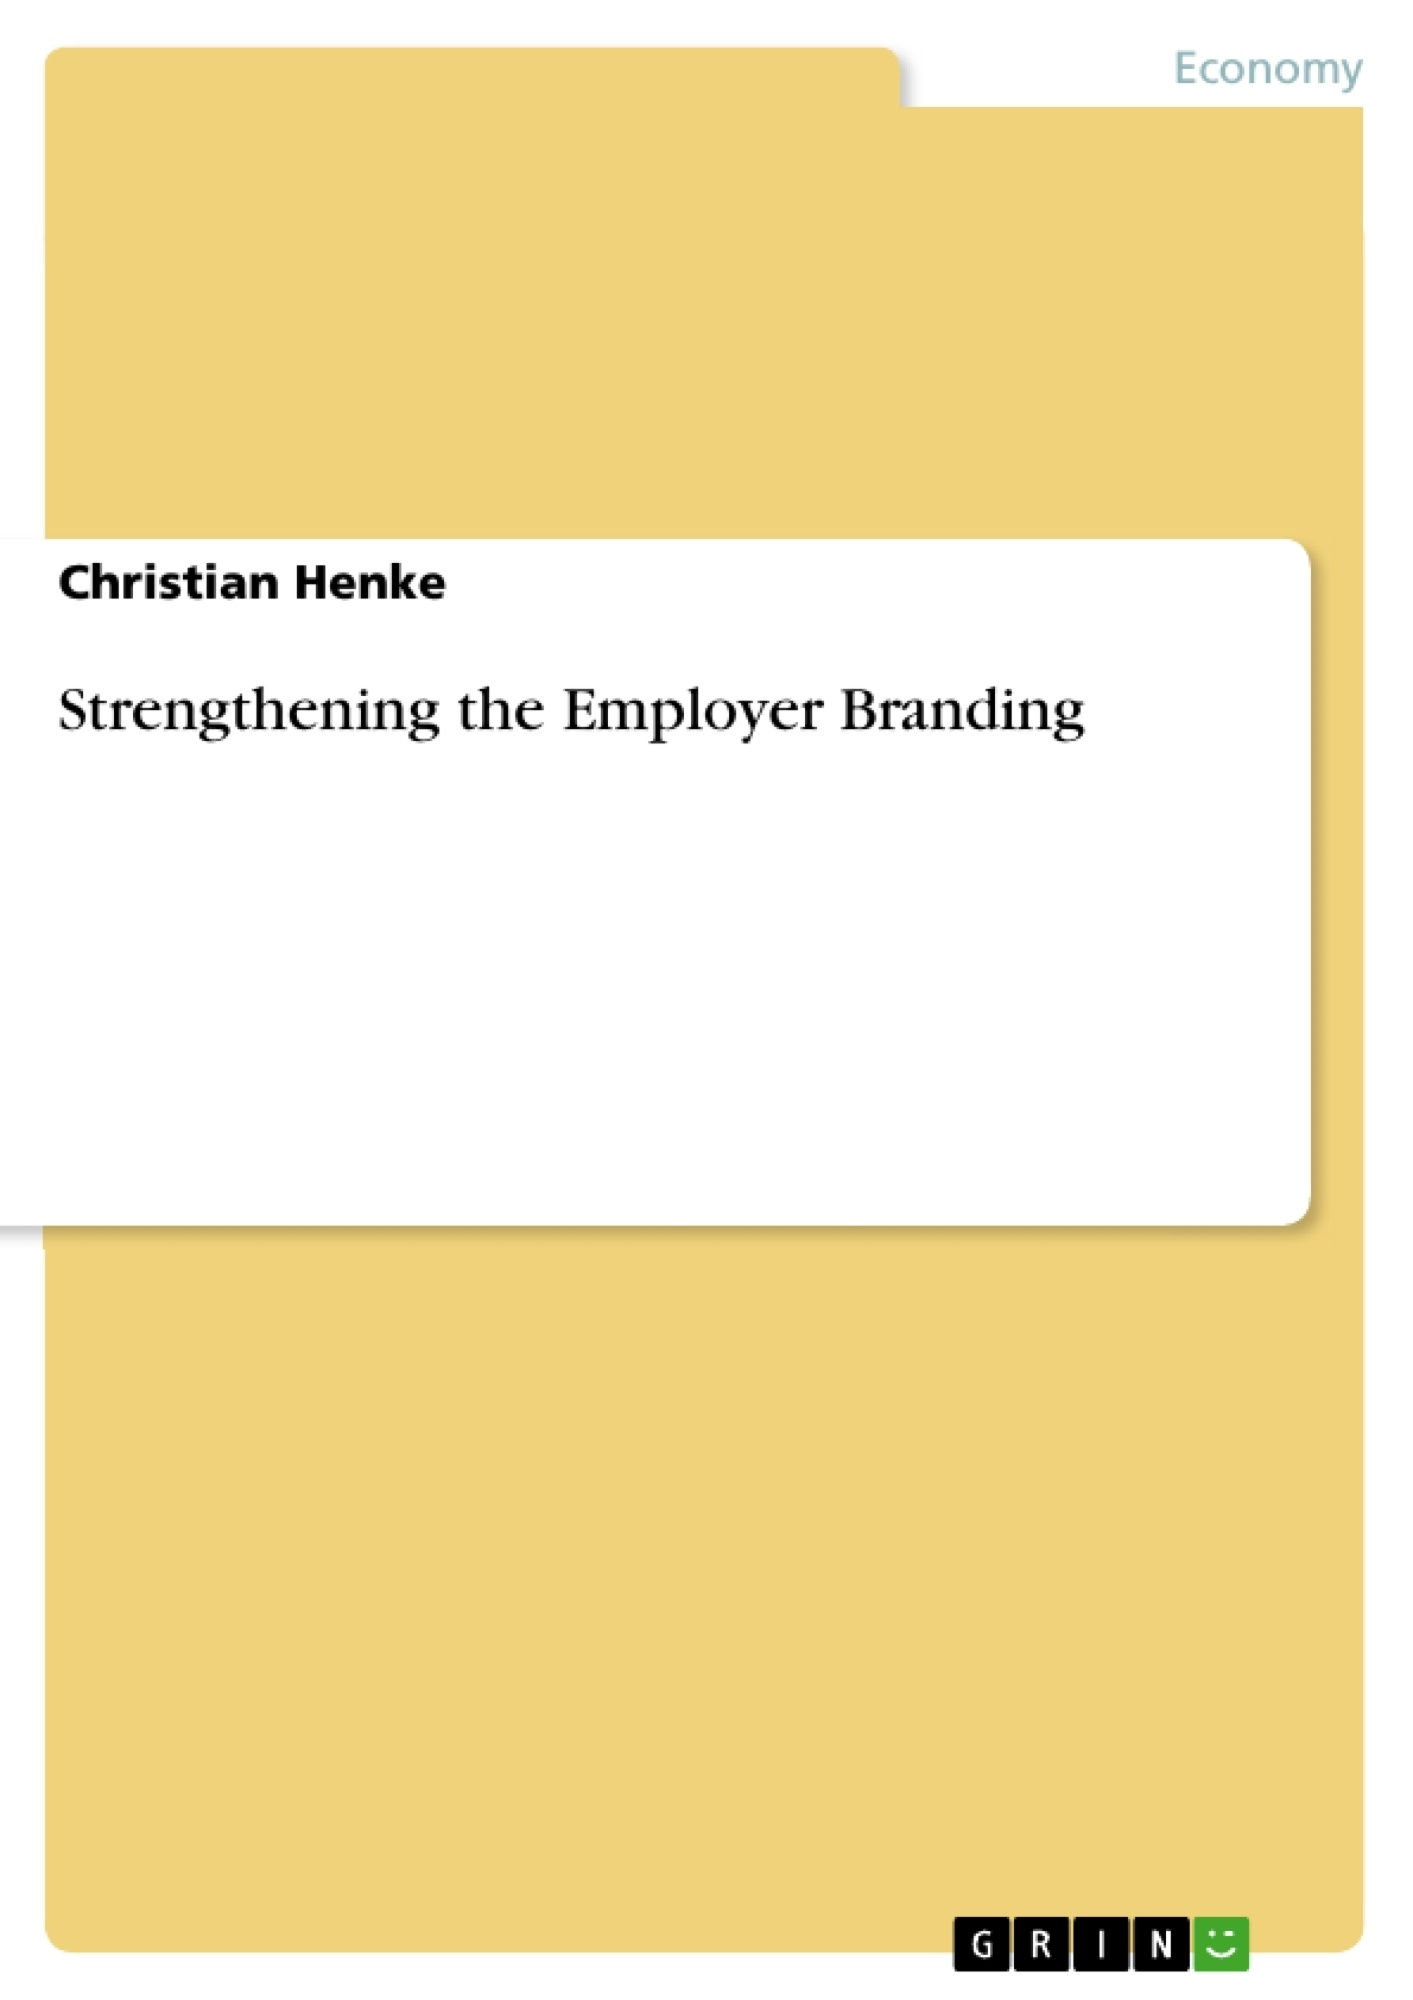 Title: Strengthening the Employer Branding